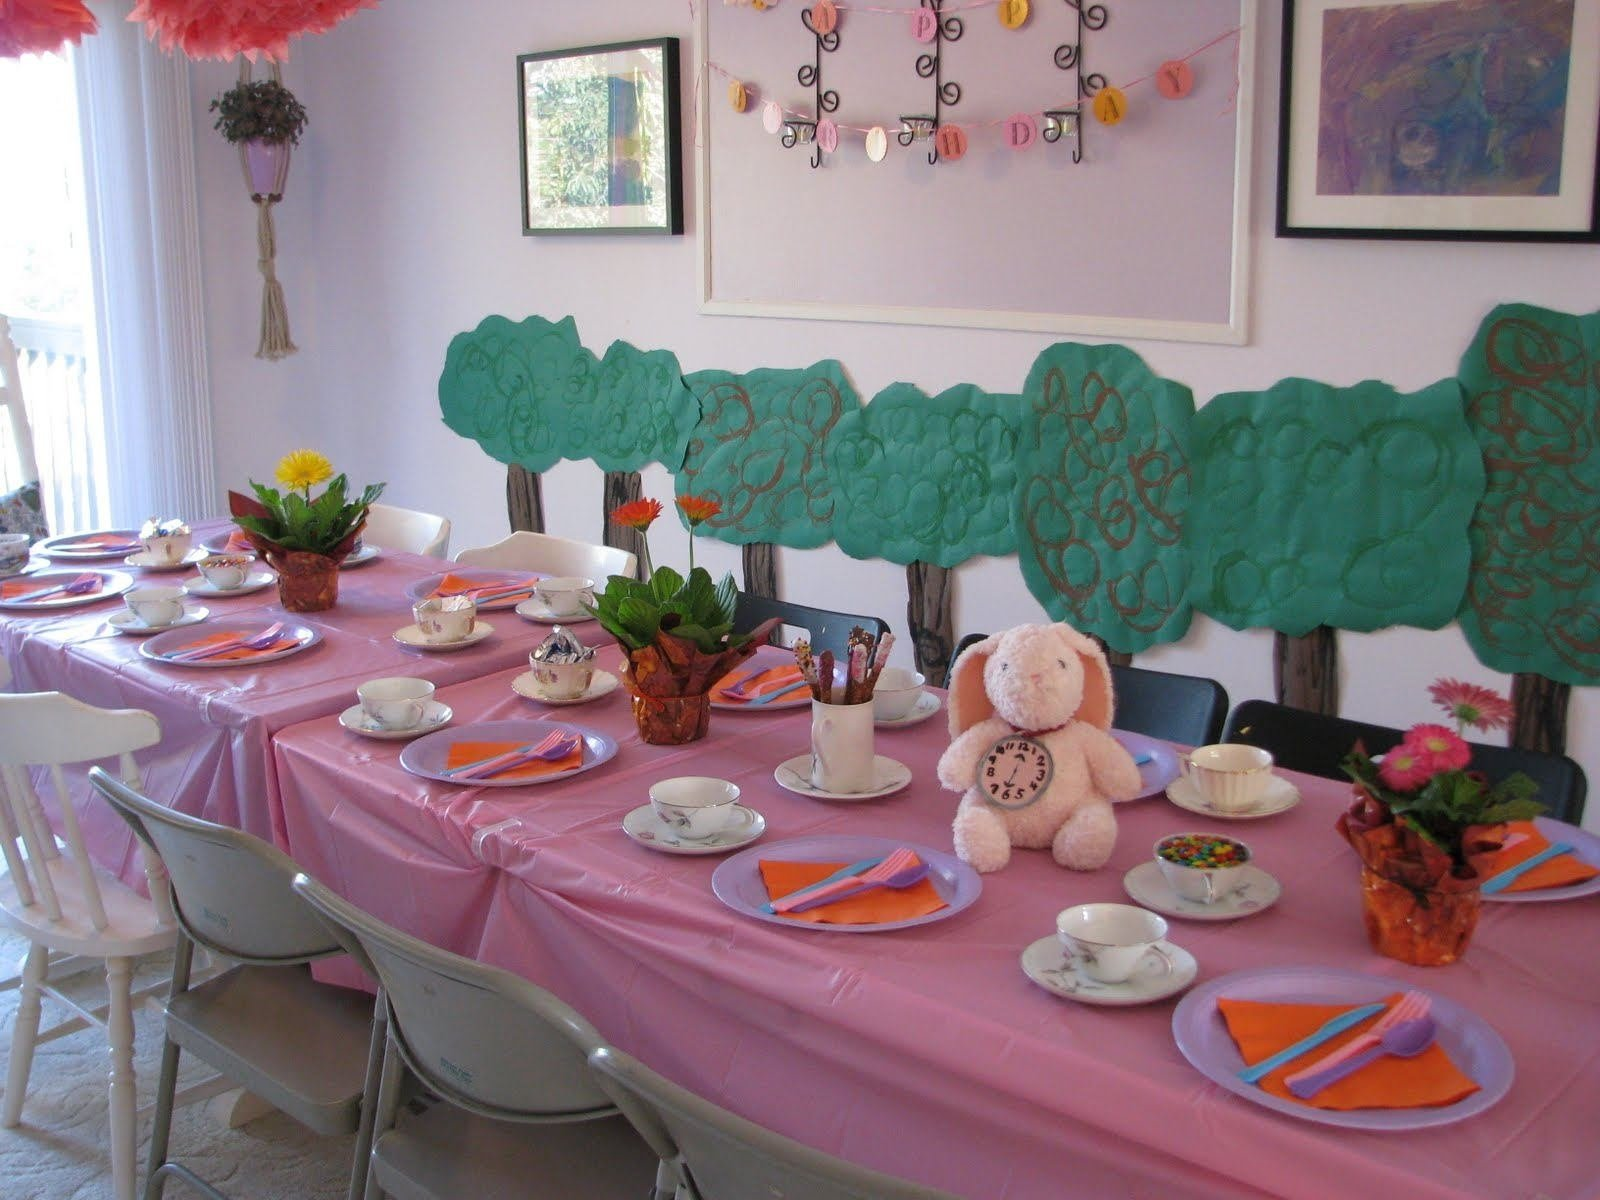 10 Stylish 2 Year Old Birthday Party Ideas Girl girls birthday party themes best decorations for 2 year old boy 1 2020